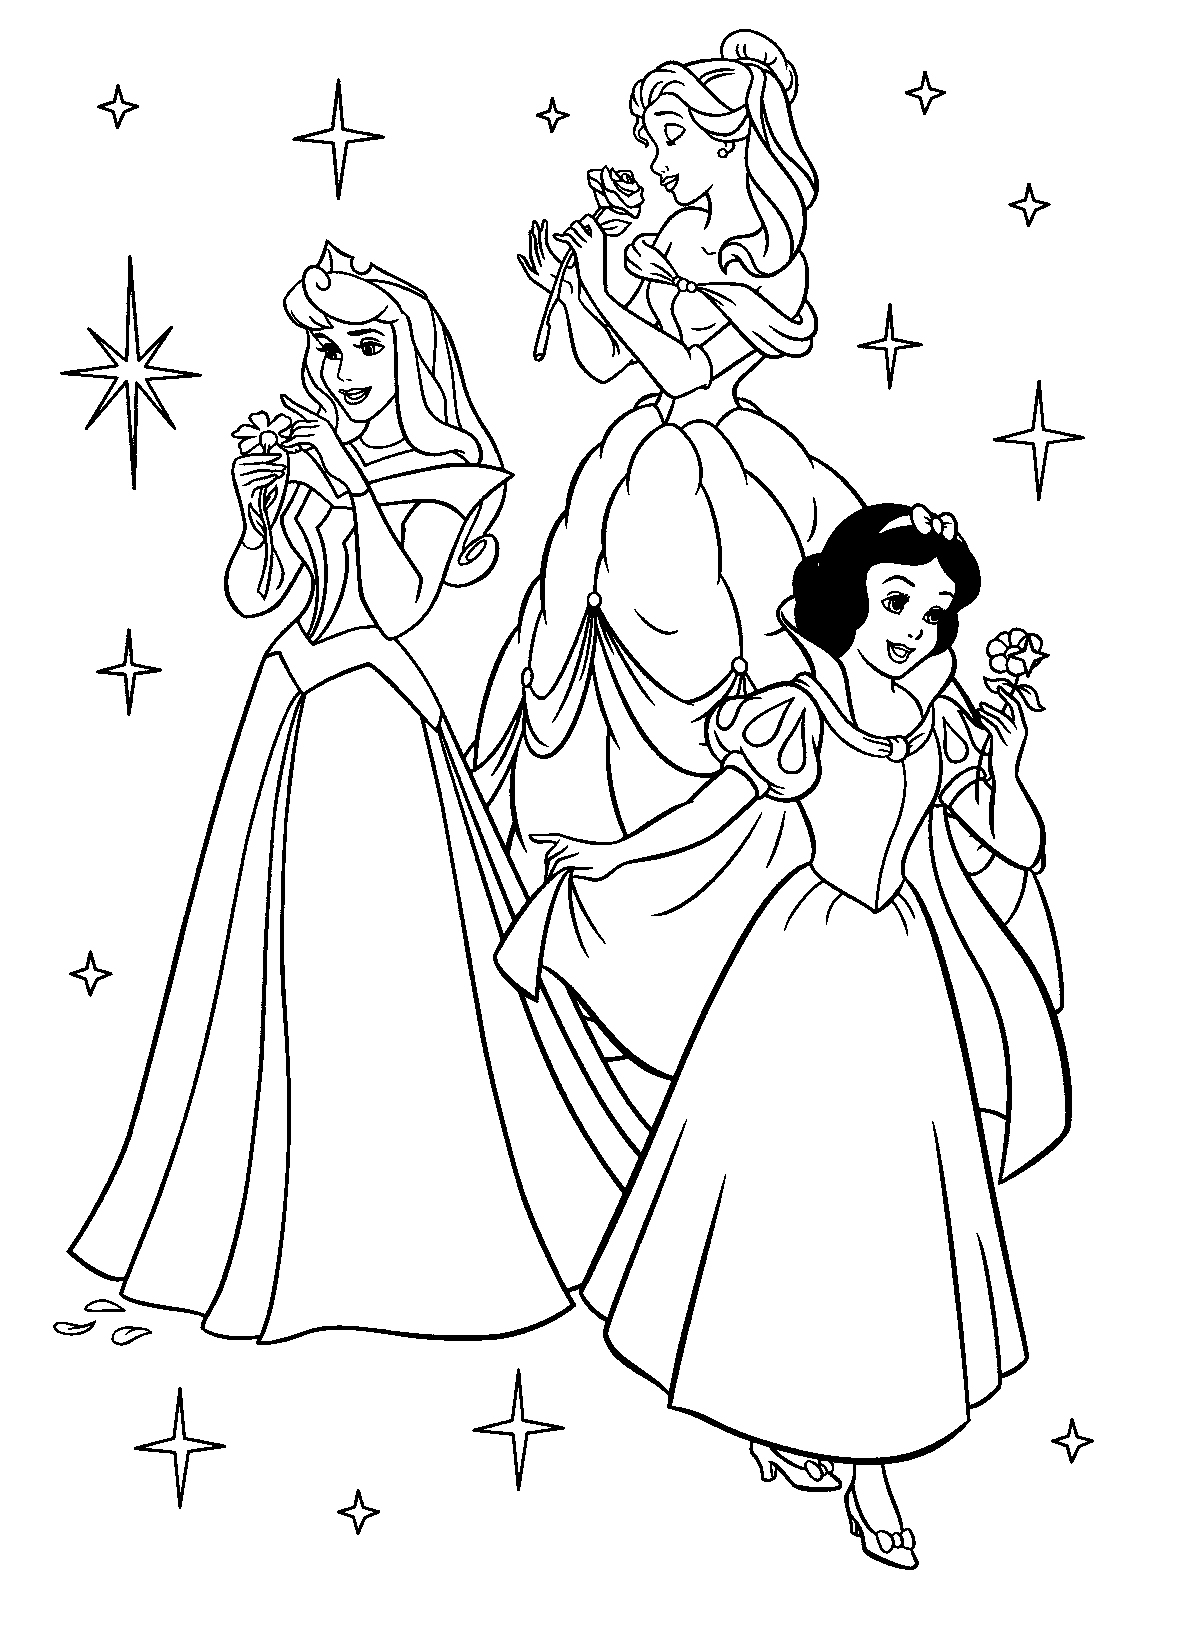 images of princess coloring pages princess coloring pages best coloring pages for kids pages of images princess coloring